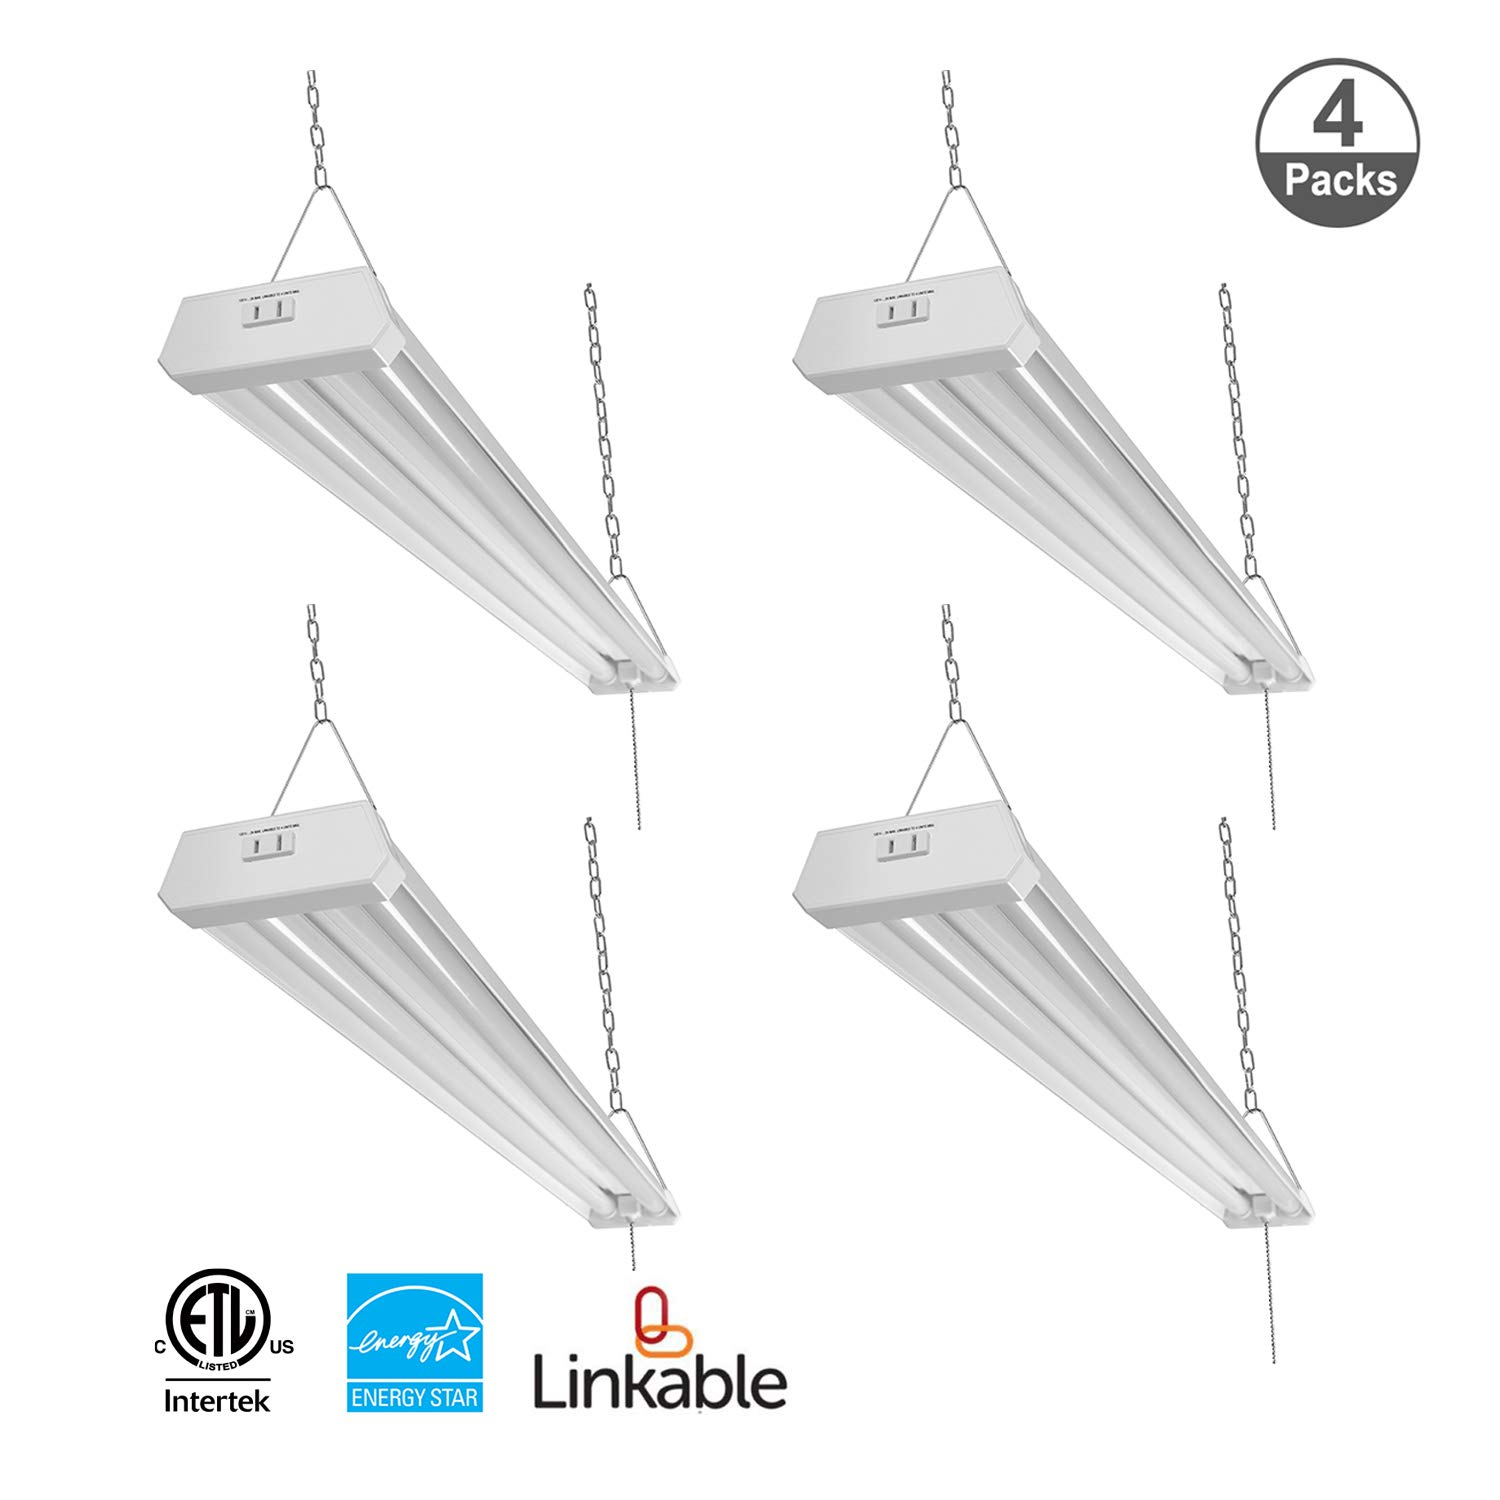 JULLISON Linkable 4 Packs LED Utility Shop Light 4 Foot 48 Inchfor Garage, 120VAC, 42W, 4200LM, CRI80+, 5000K, Frosted Lens, with Pull ChainSwitch & Polarized Plug, ETL/Energy Star Certified, White